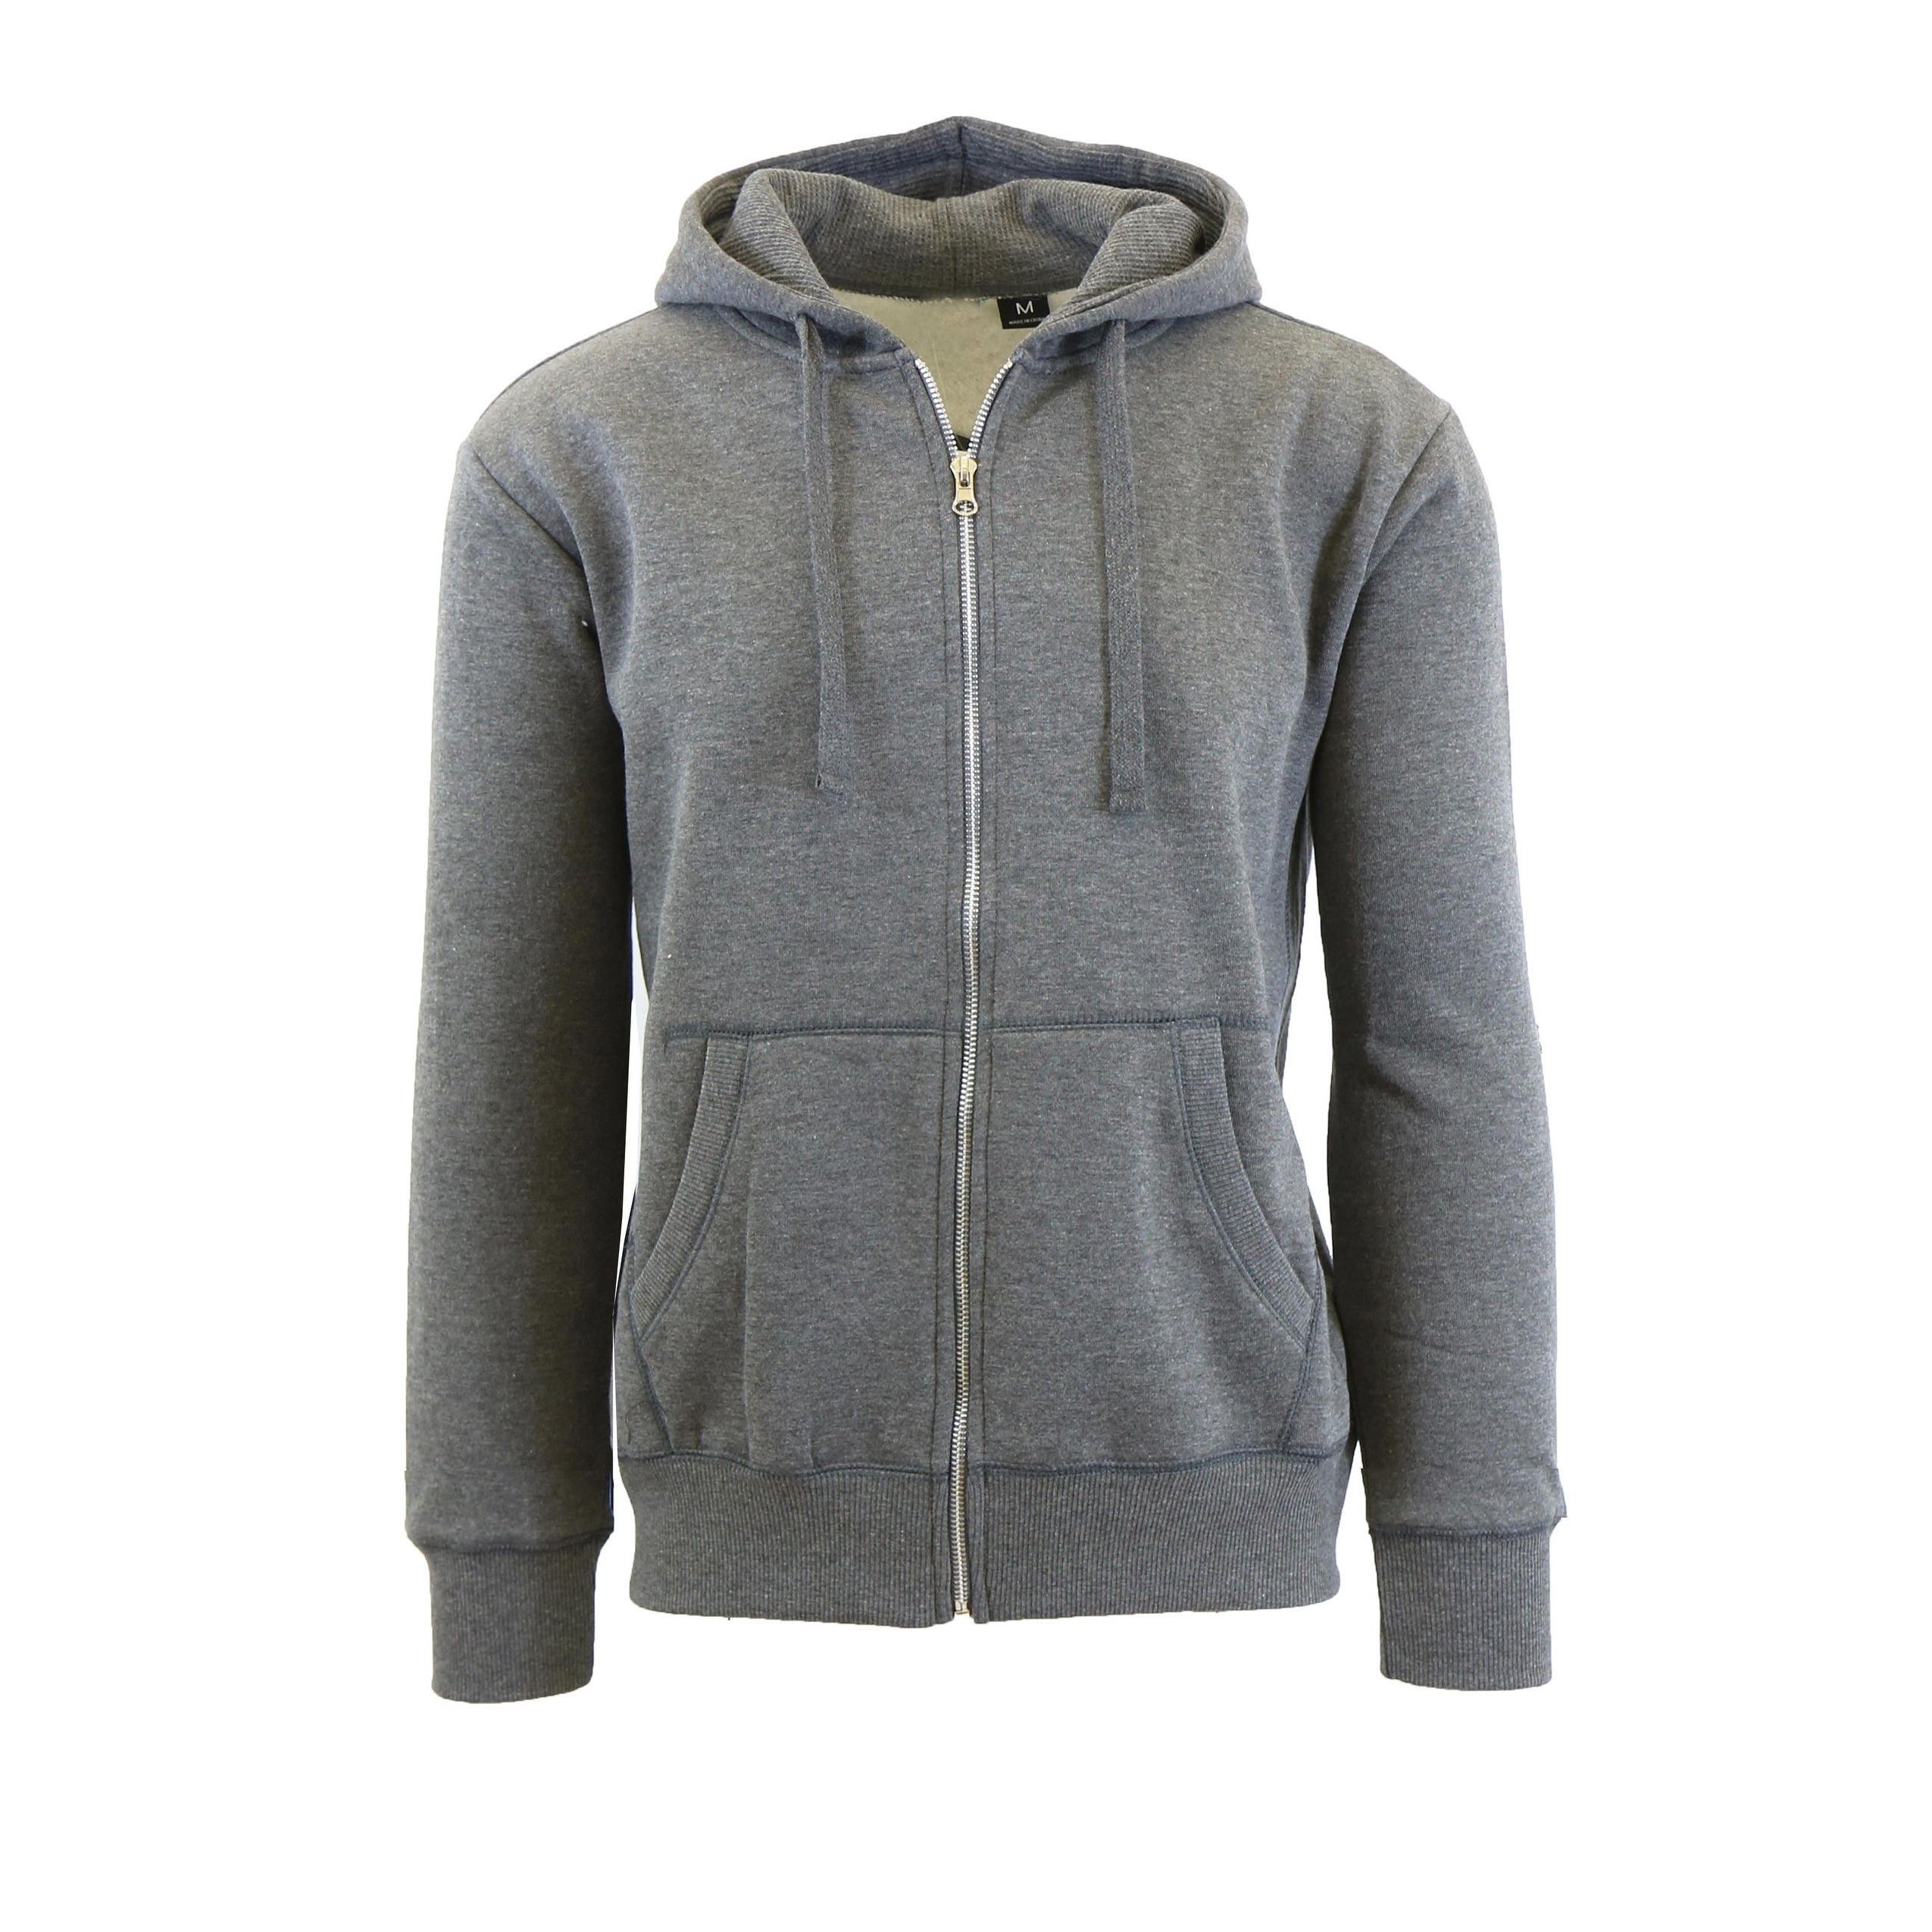 Shop Men s Fleece Lined Zip-Up Hoodies With Thermal Lined Hood - On ... f3affe757fa